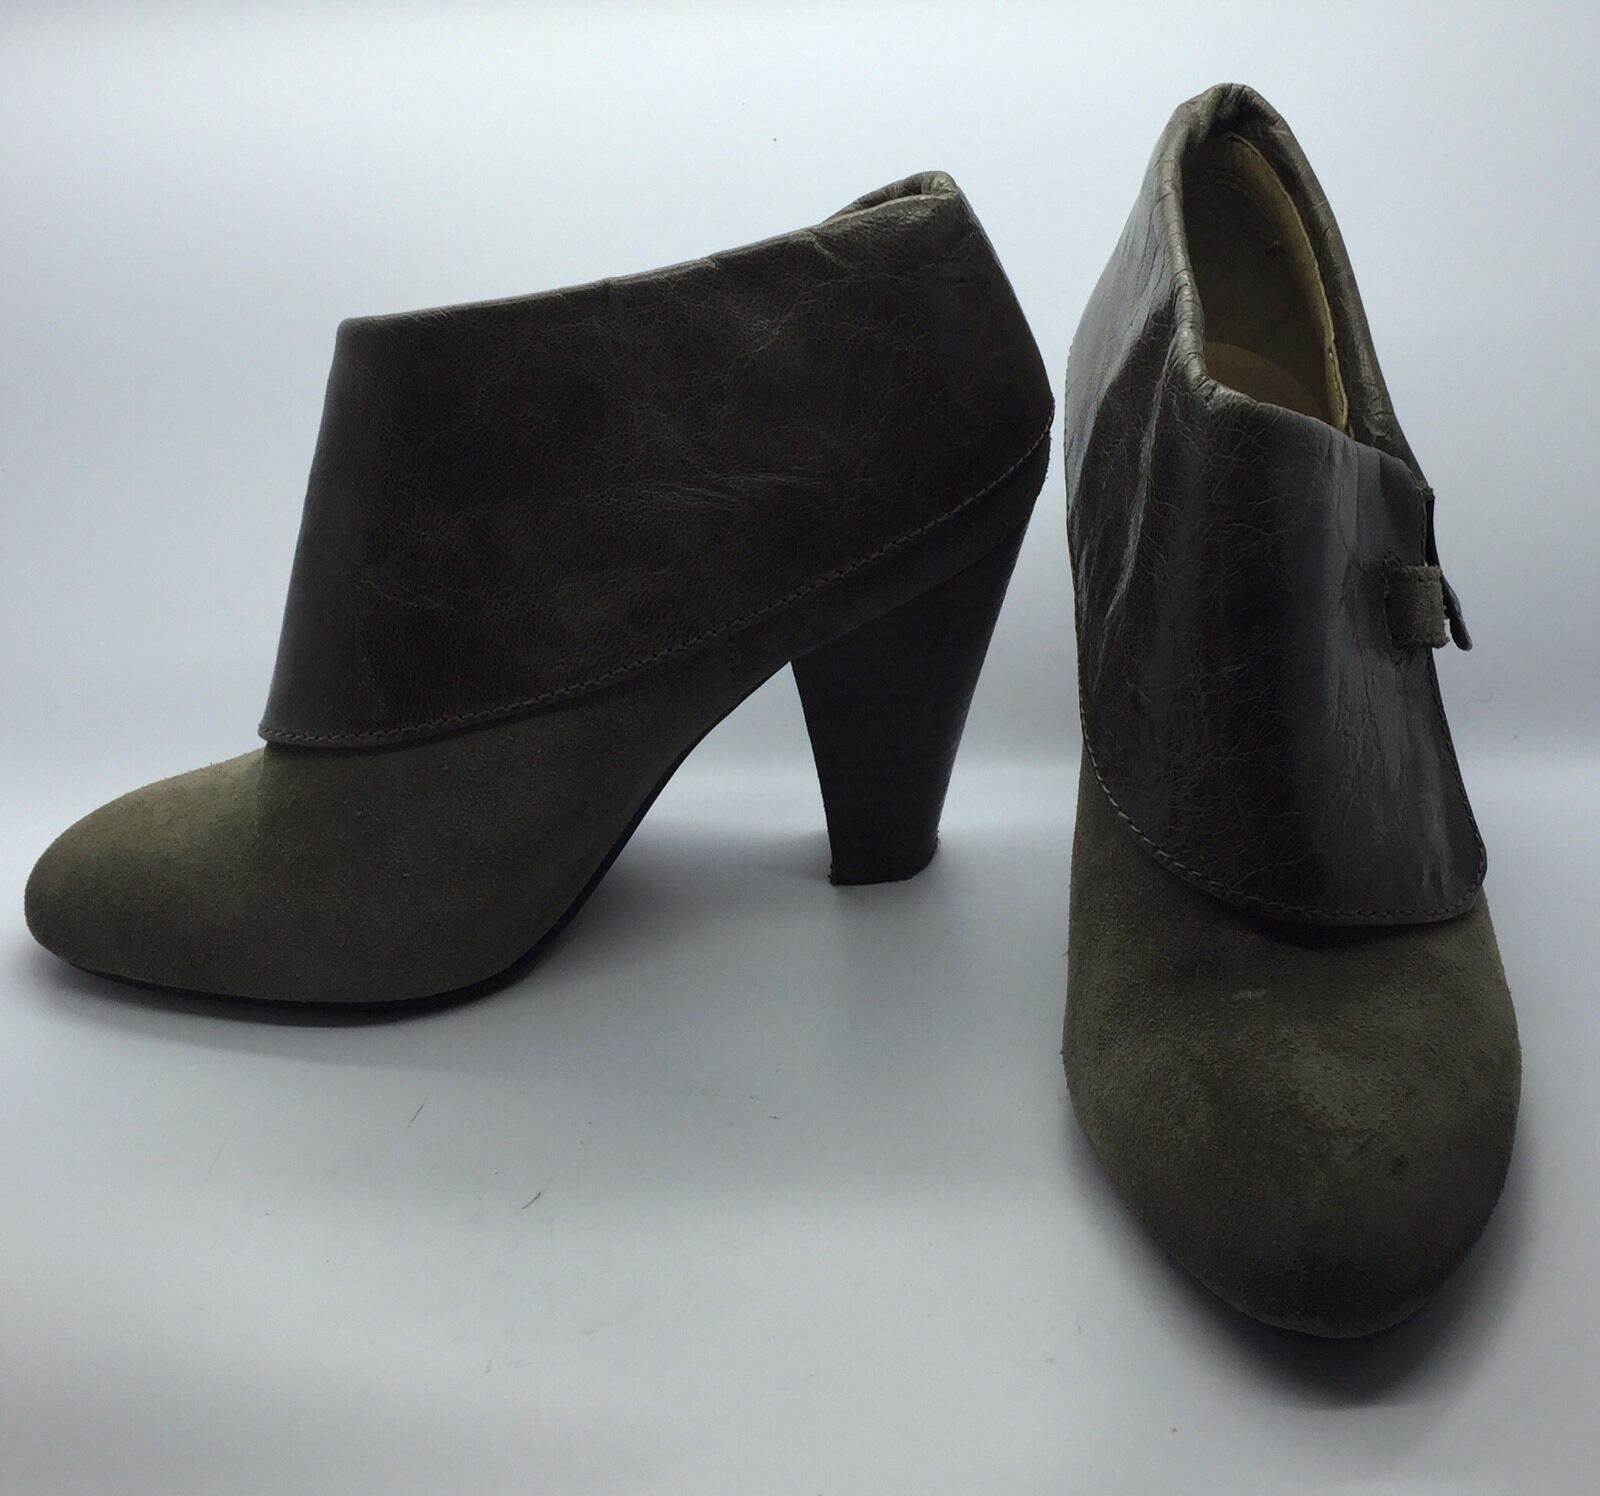 LEVITY Sage Green Green Green Suede Leder Schuhe Booties Wood Stacked High Heels Woman's 6M e25a2c